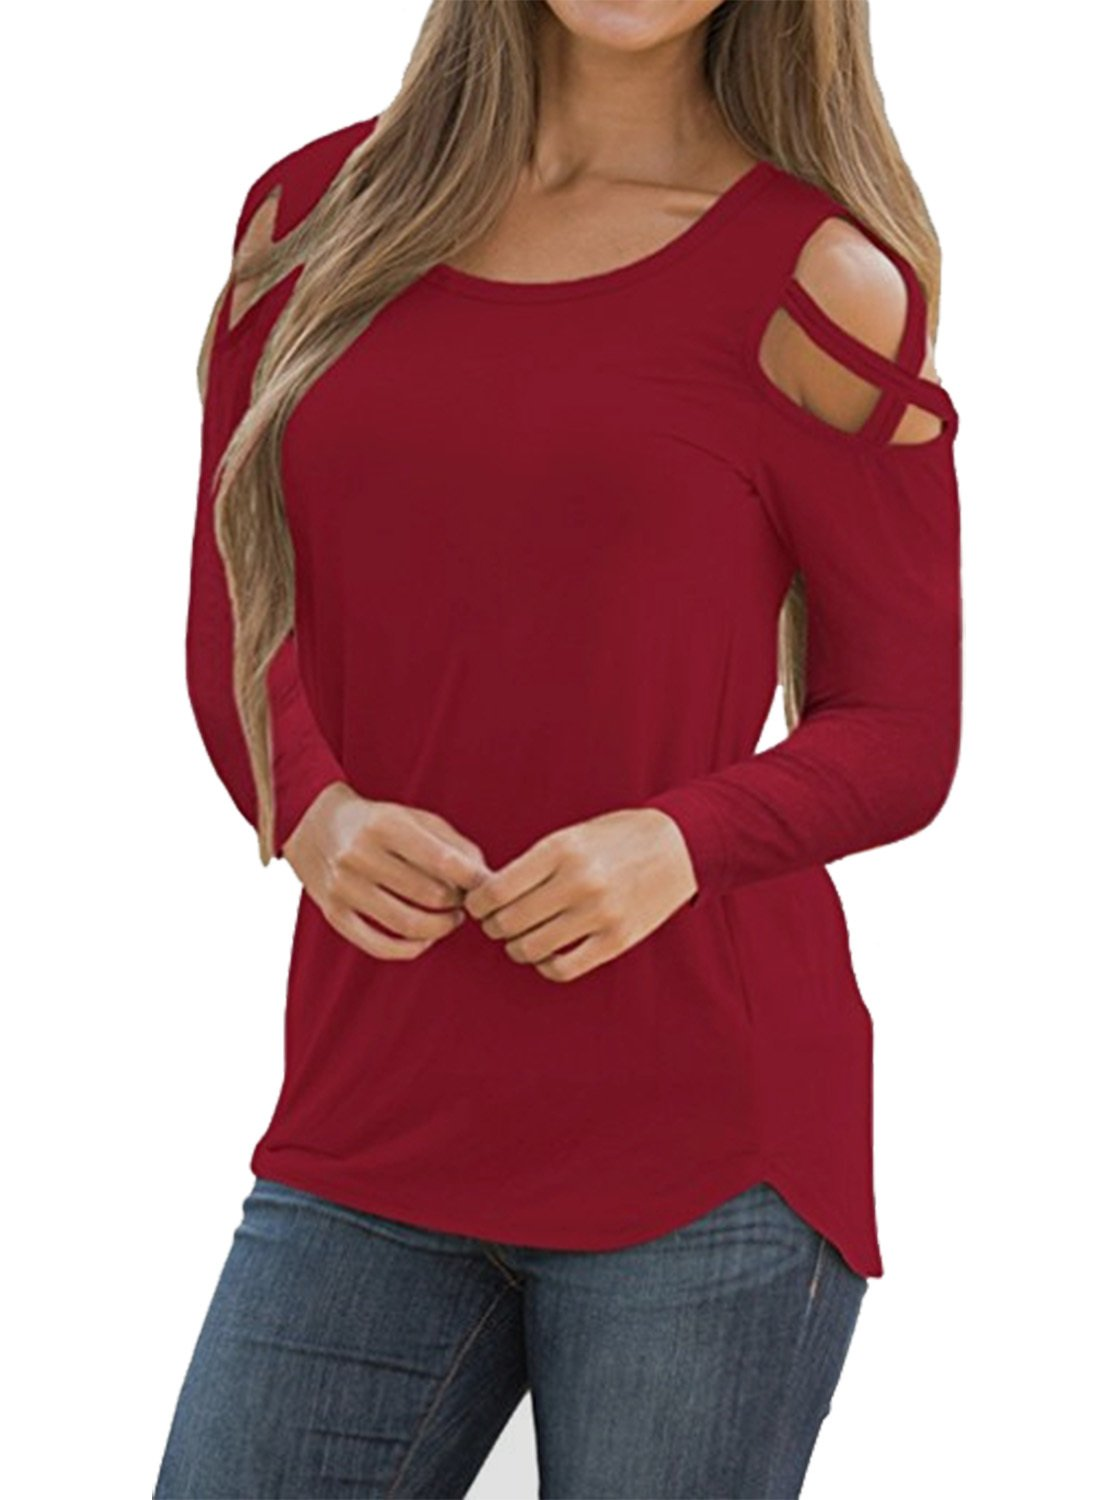 Adreamly Women's Casual Summer Long Sleeve Loose Strappy Cold Shoulder Tops Basic T Shirts Blouses Burgundy Medium